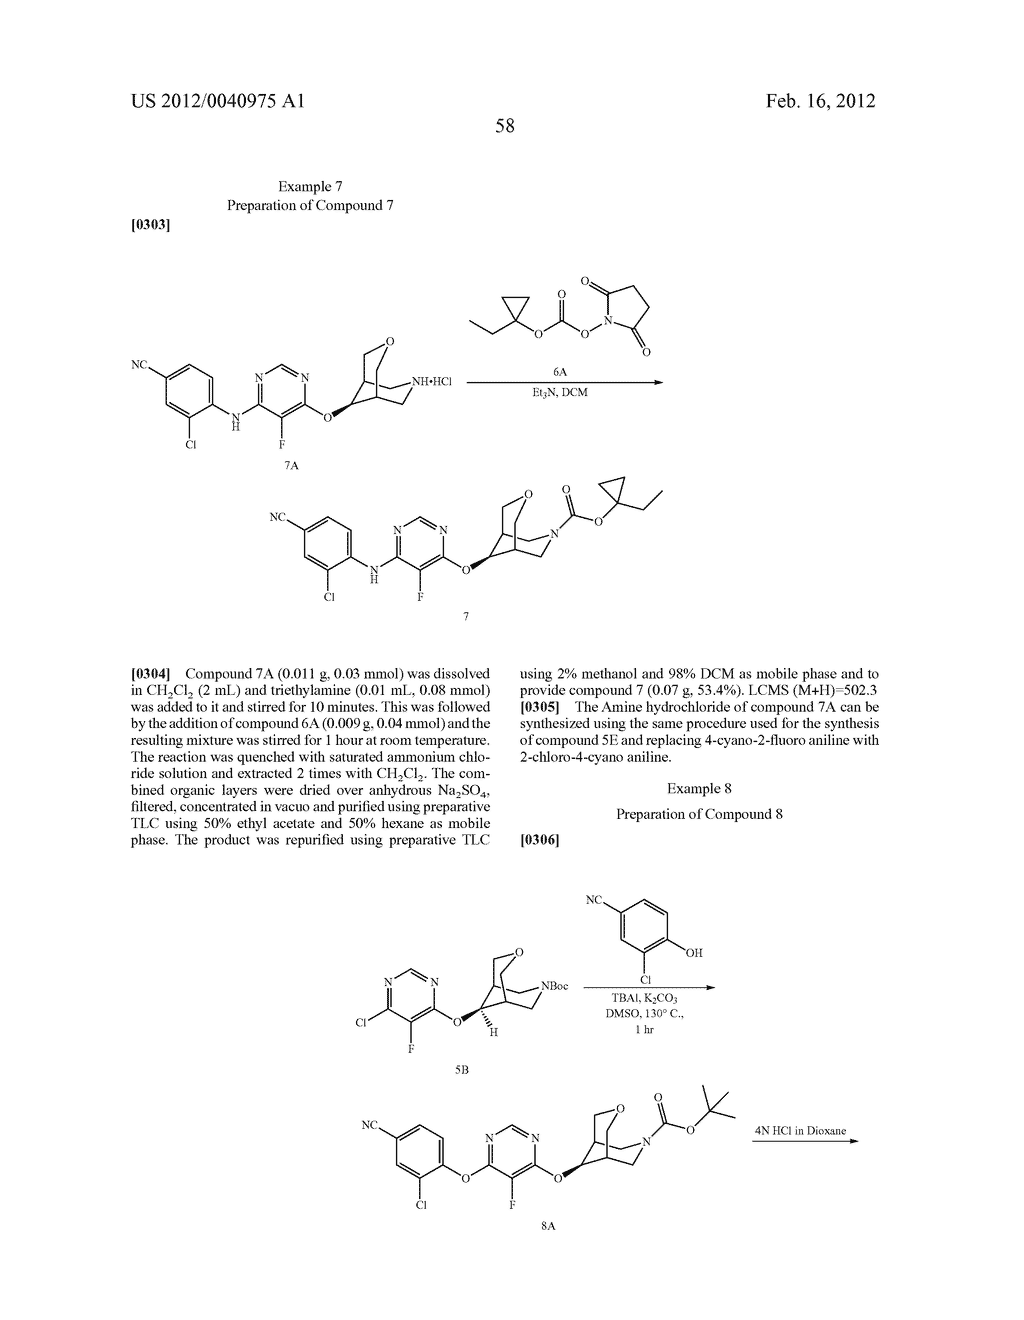 BRIDGED BICYCLIC HETEROCYCLE DERIVATIVES AND METHODS OF USE THEREOF - diagram, schematic, and image 59